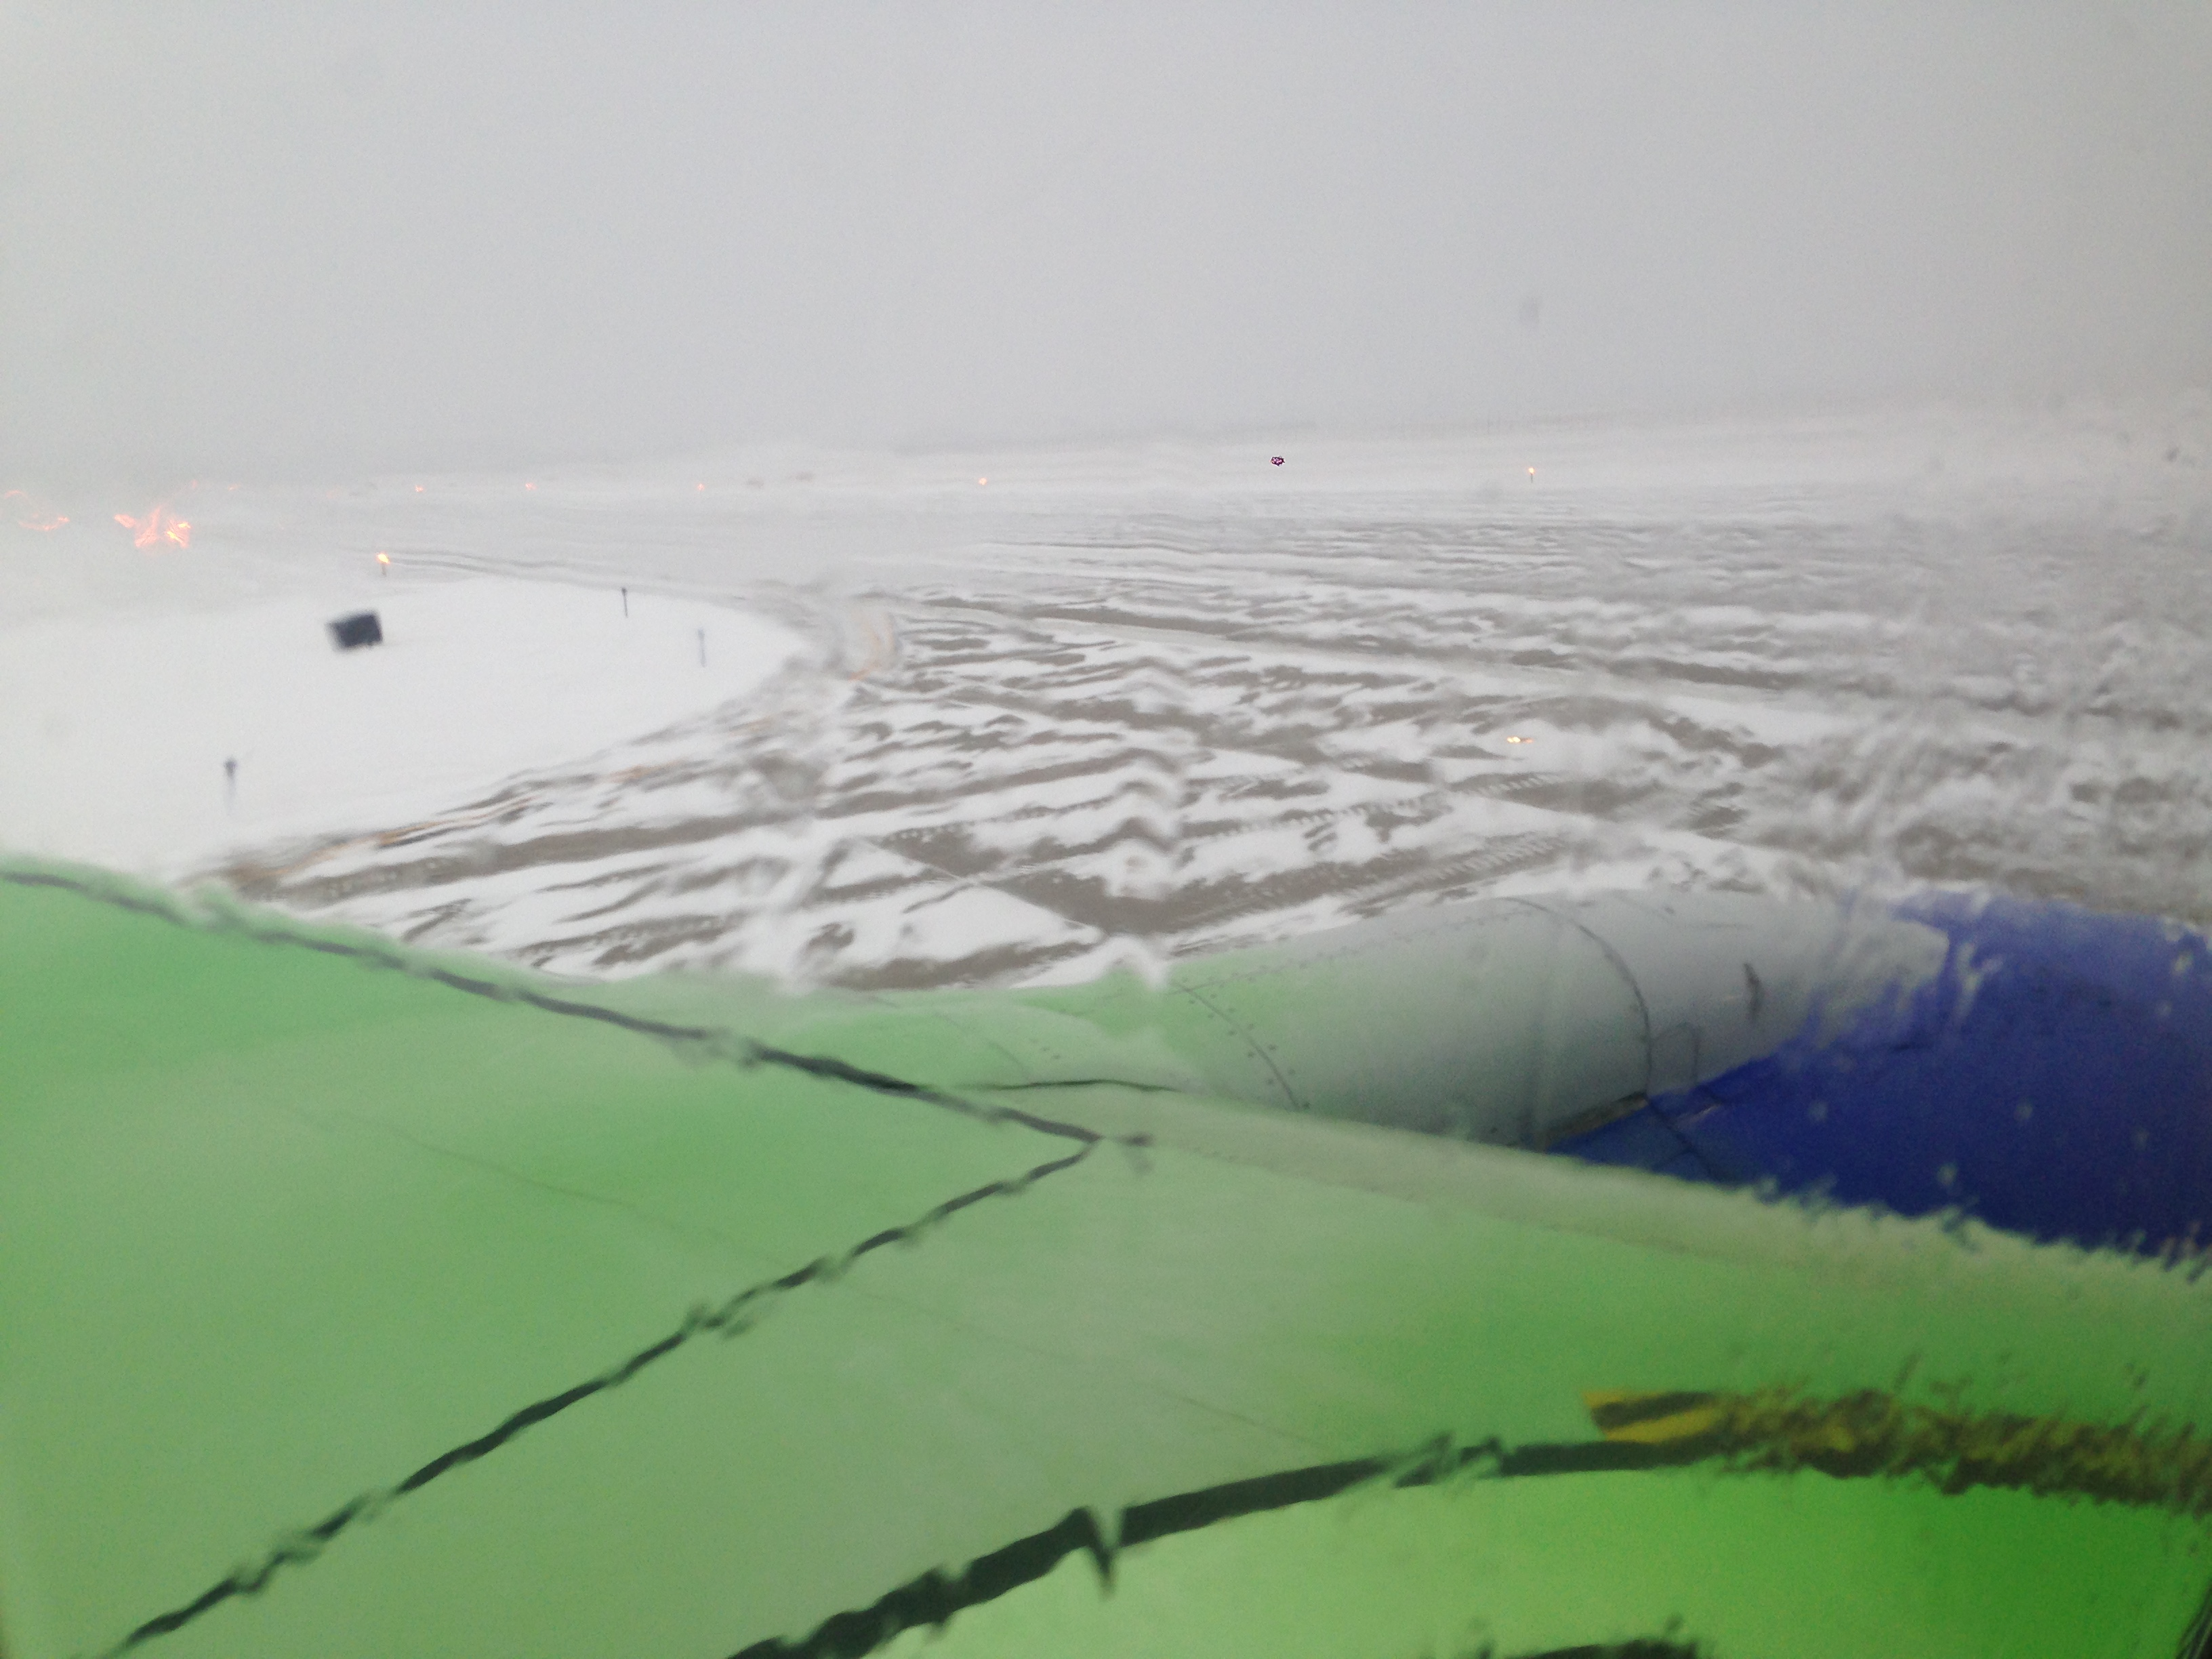 deicer on the plane wing